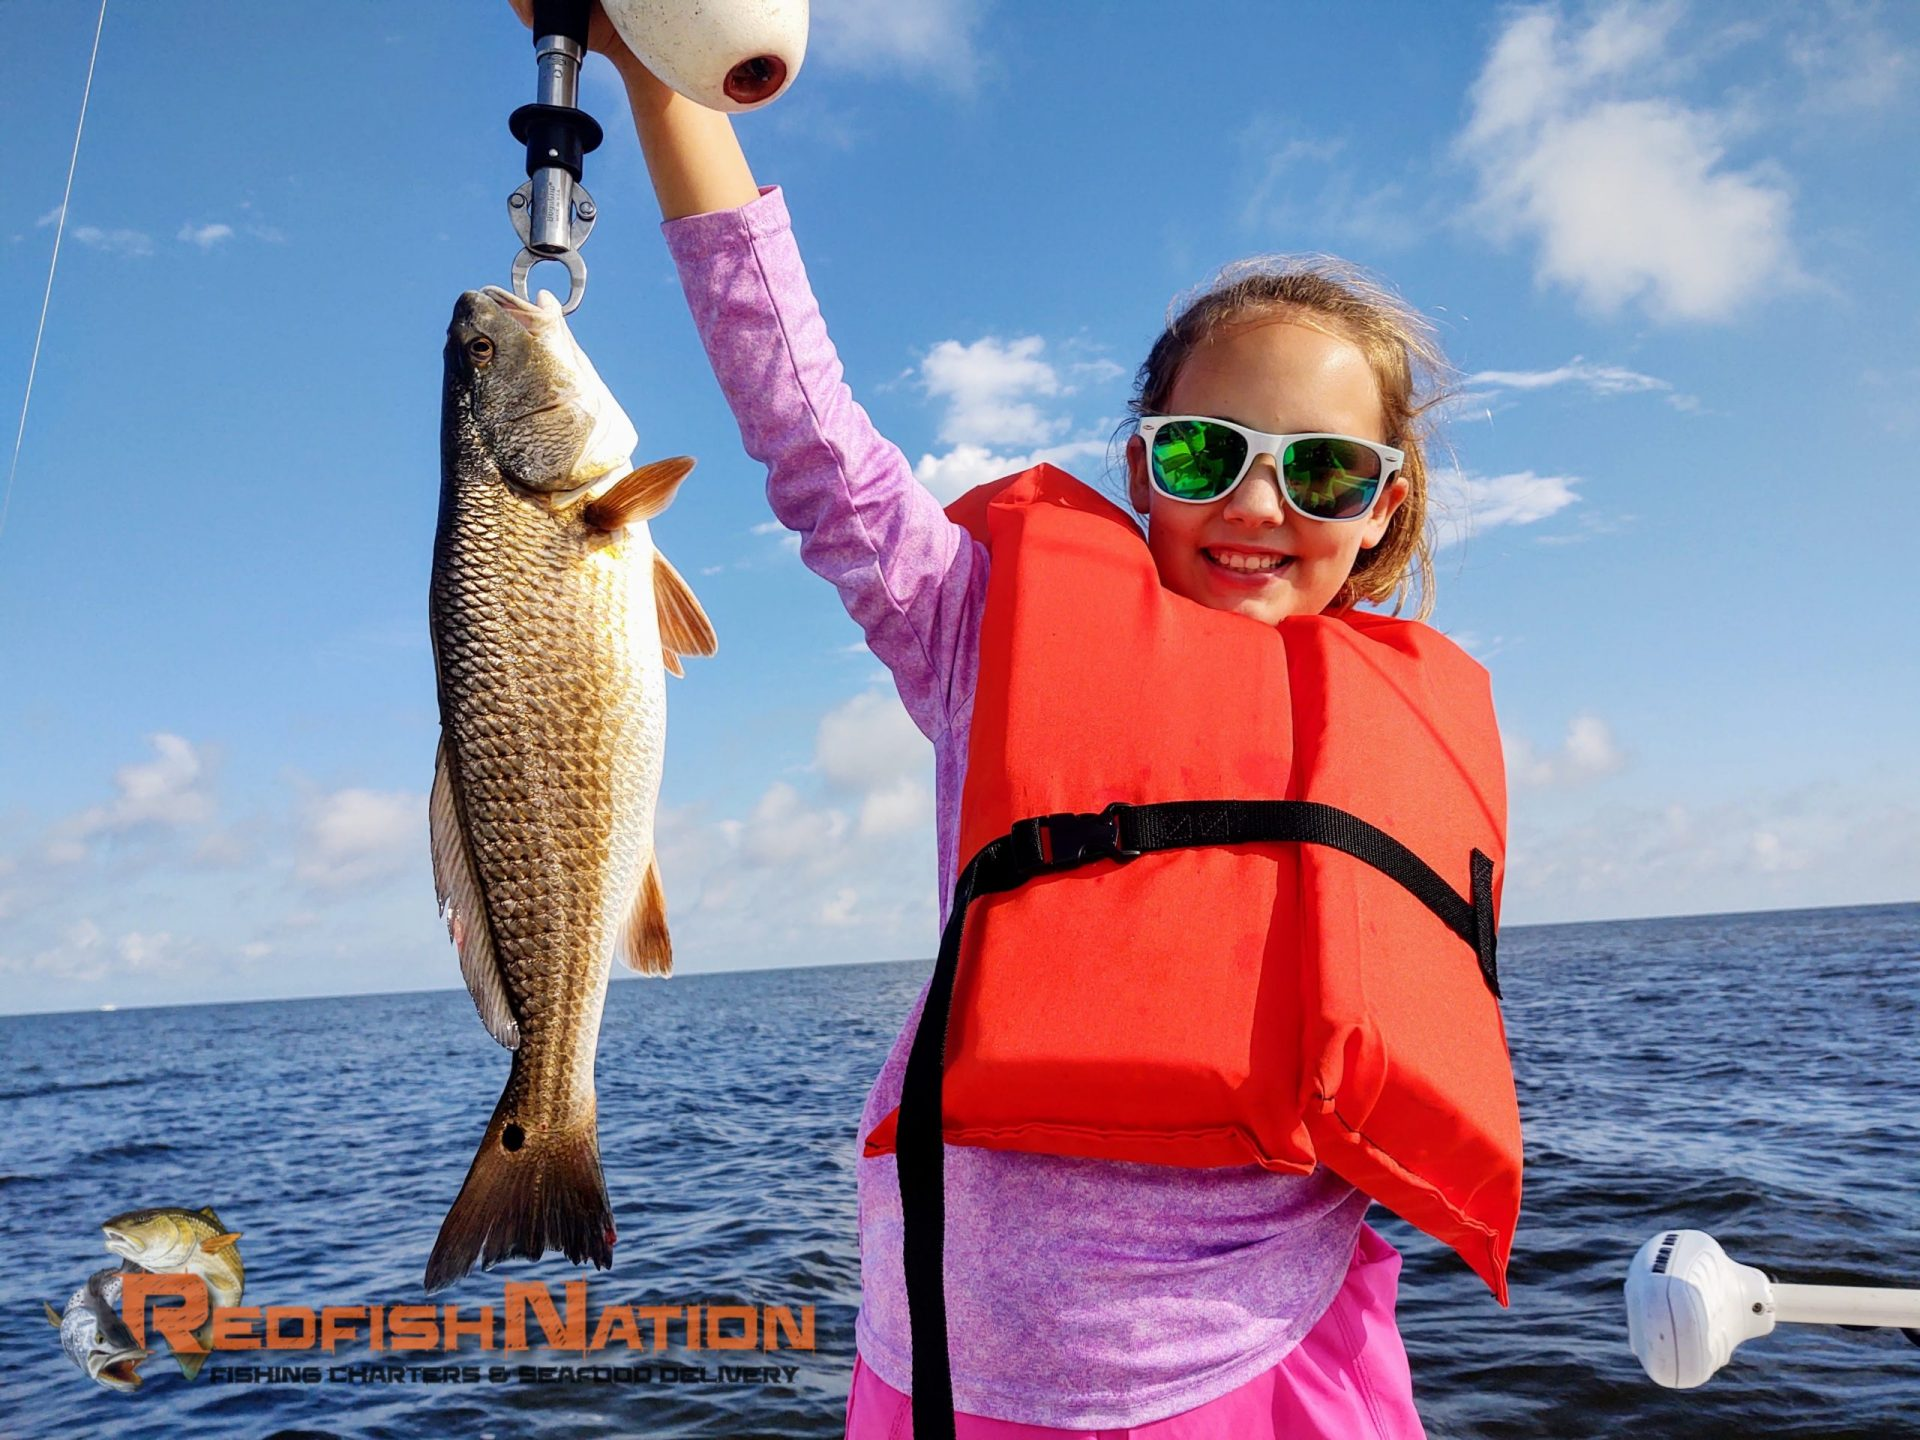 Guided Louisiana Fishing Charter - Redfish Nation - Happy Redfish Catch